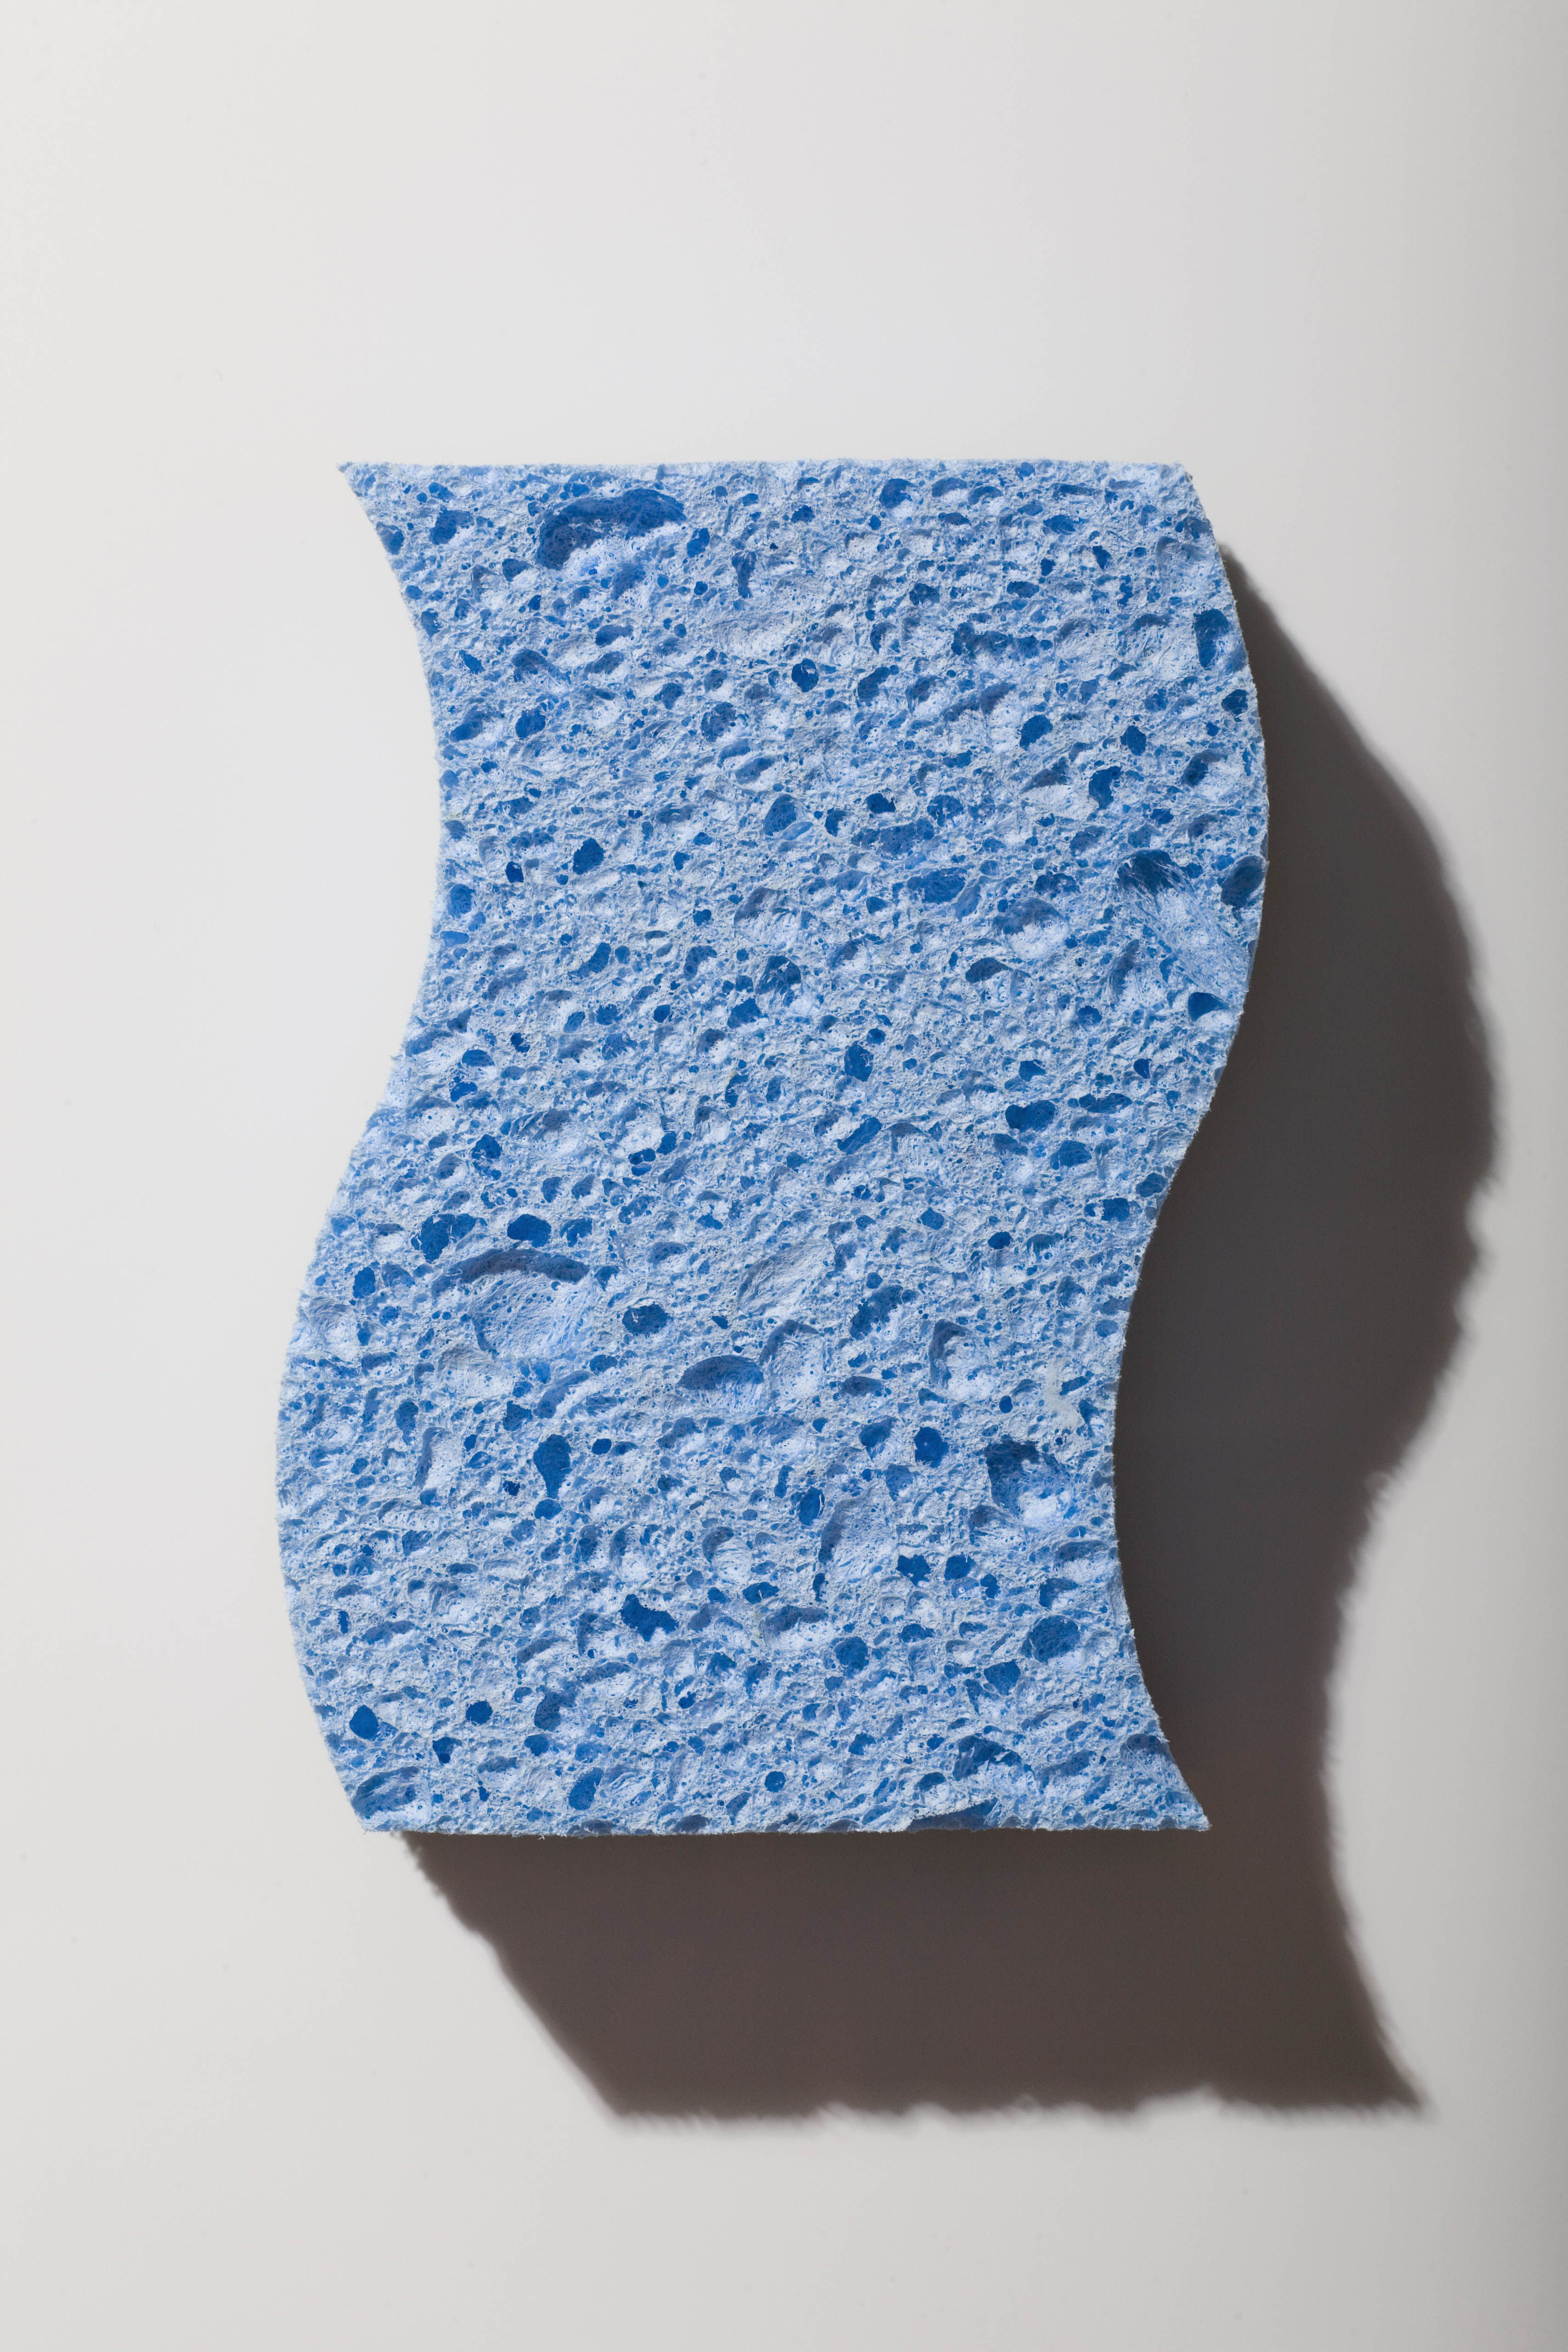 """<p>If you like to zap the bacteria that lingers on your kitchen sponge <a href=""""http://www.goodhousekeeping.com/home/cleaning/a18731/how-to-clean-a-sponge/"""" target=""""_blank"""">in the microwave</a>, you need to make sure the sponge saturated with water first. Here's why: Microwaves are attracted to water. """"They work by making water or fat molecules move and heat by friction,"""" explains Sharon Franke, director of the Kitchen Appliances and Technology Lab at the <a href=""""http://www.goodhousekeeping.com/institute/about-the-institute/a16265/about-good-housekeeping-research-institute/"""" target=""""_blank"""">Good Housekeeping Institute</a>. """"If sponges are dry, there's no water to attract energy and the sponges themselves will attract energy and can catch on fire."""" </p>"""